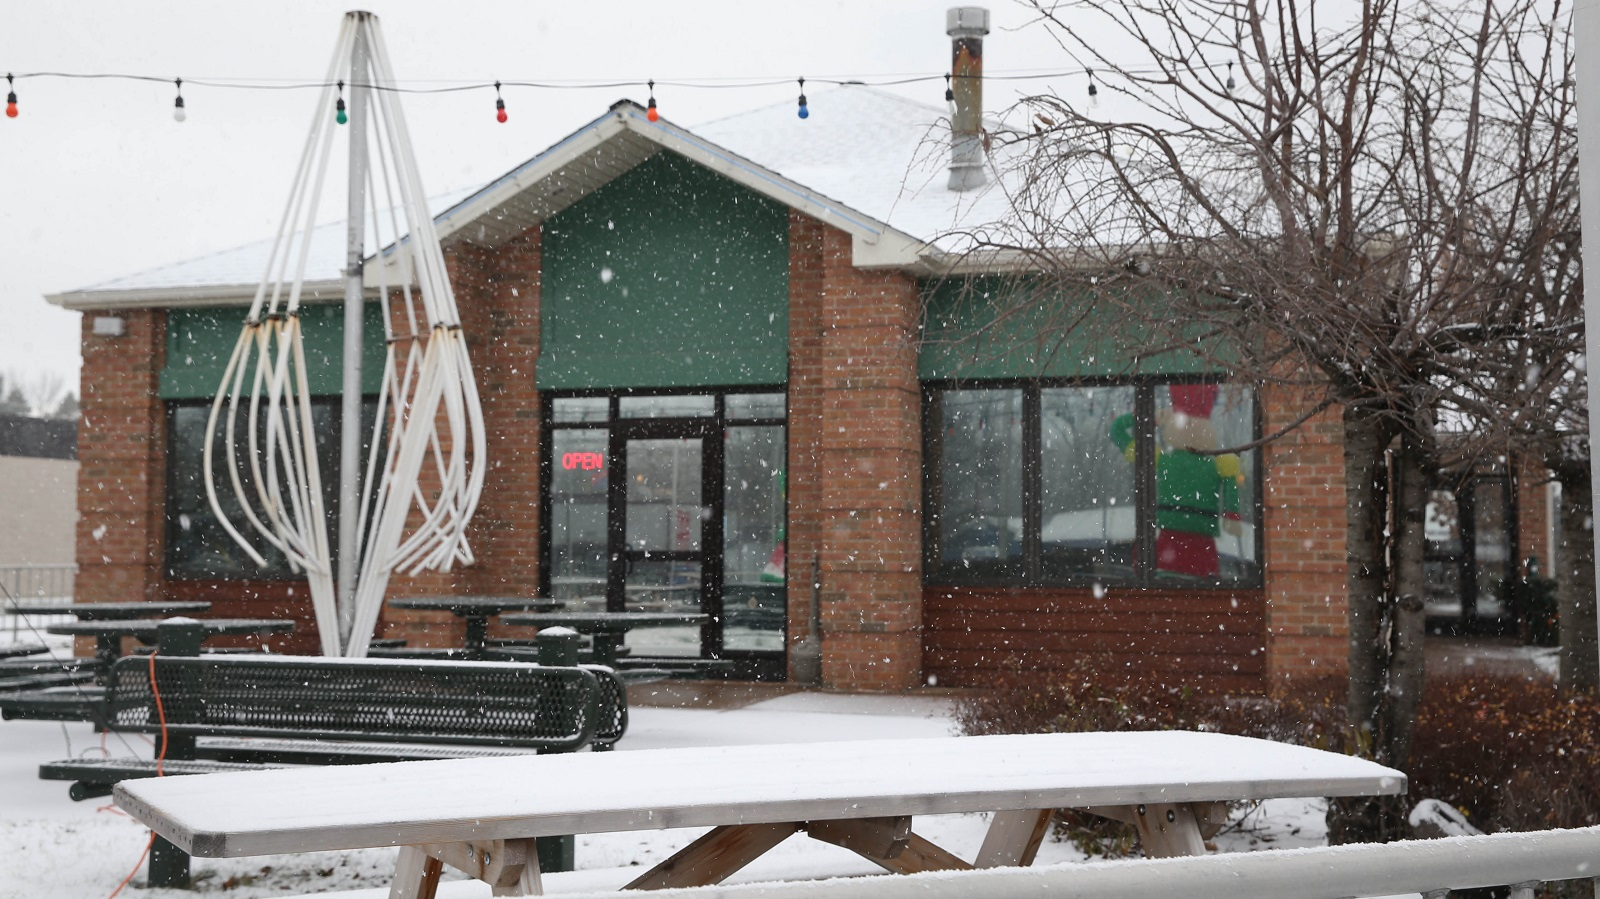 Brunner's Eatery is at 7171 Boston State Road in Hamburg. (Sharon Cantillon/Buffalo News)